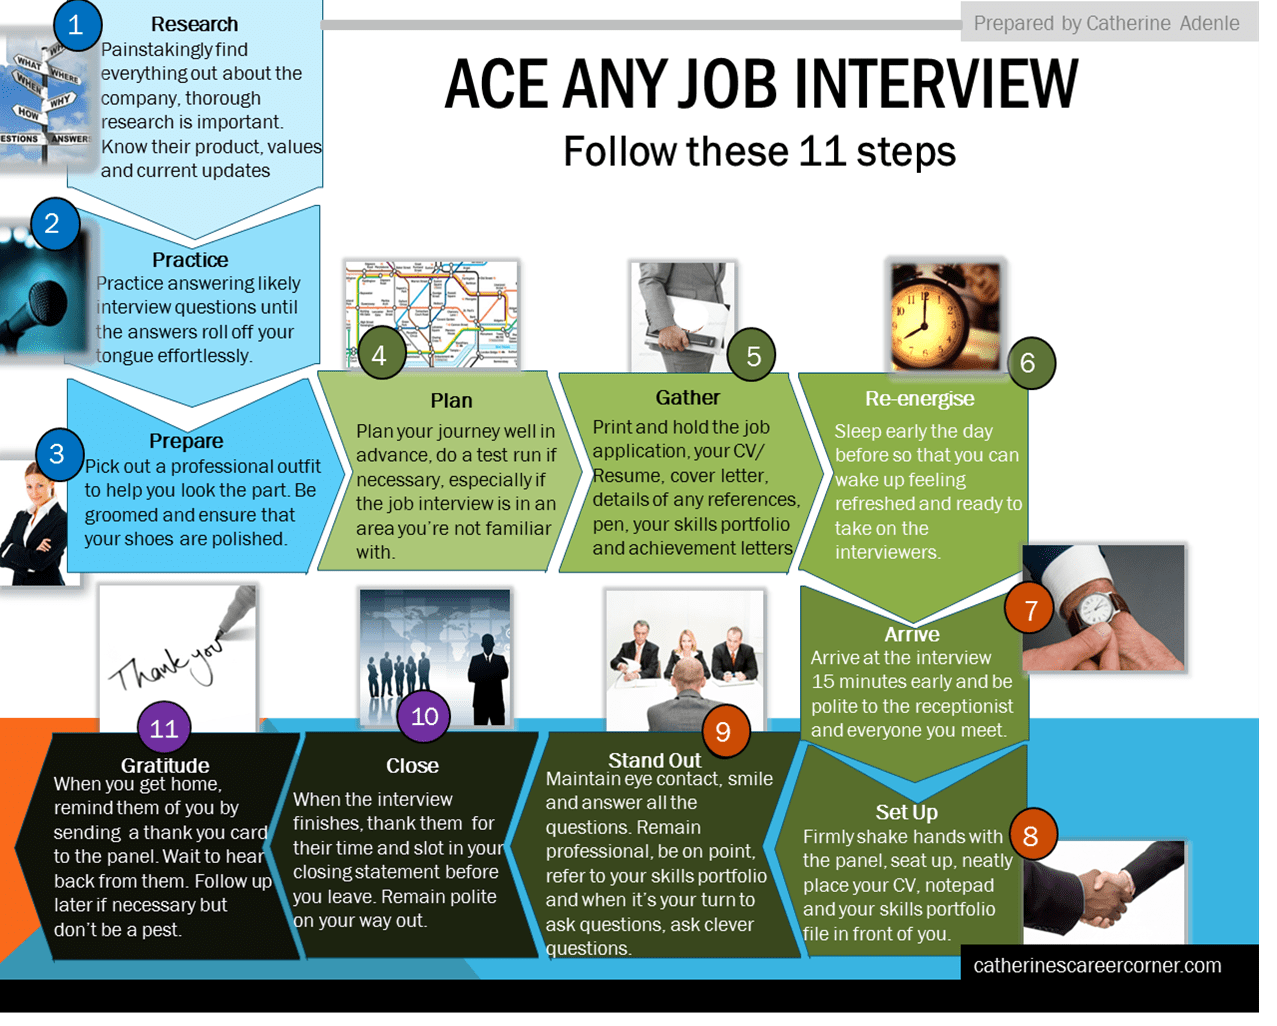 job interview explore most popular job interview questions knowing the questions that the interviewer is likely to ask is important but knowing why they are asking and how to answer will help you to ace your job